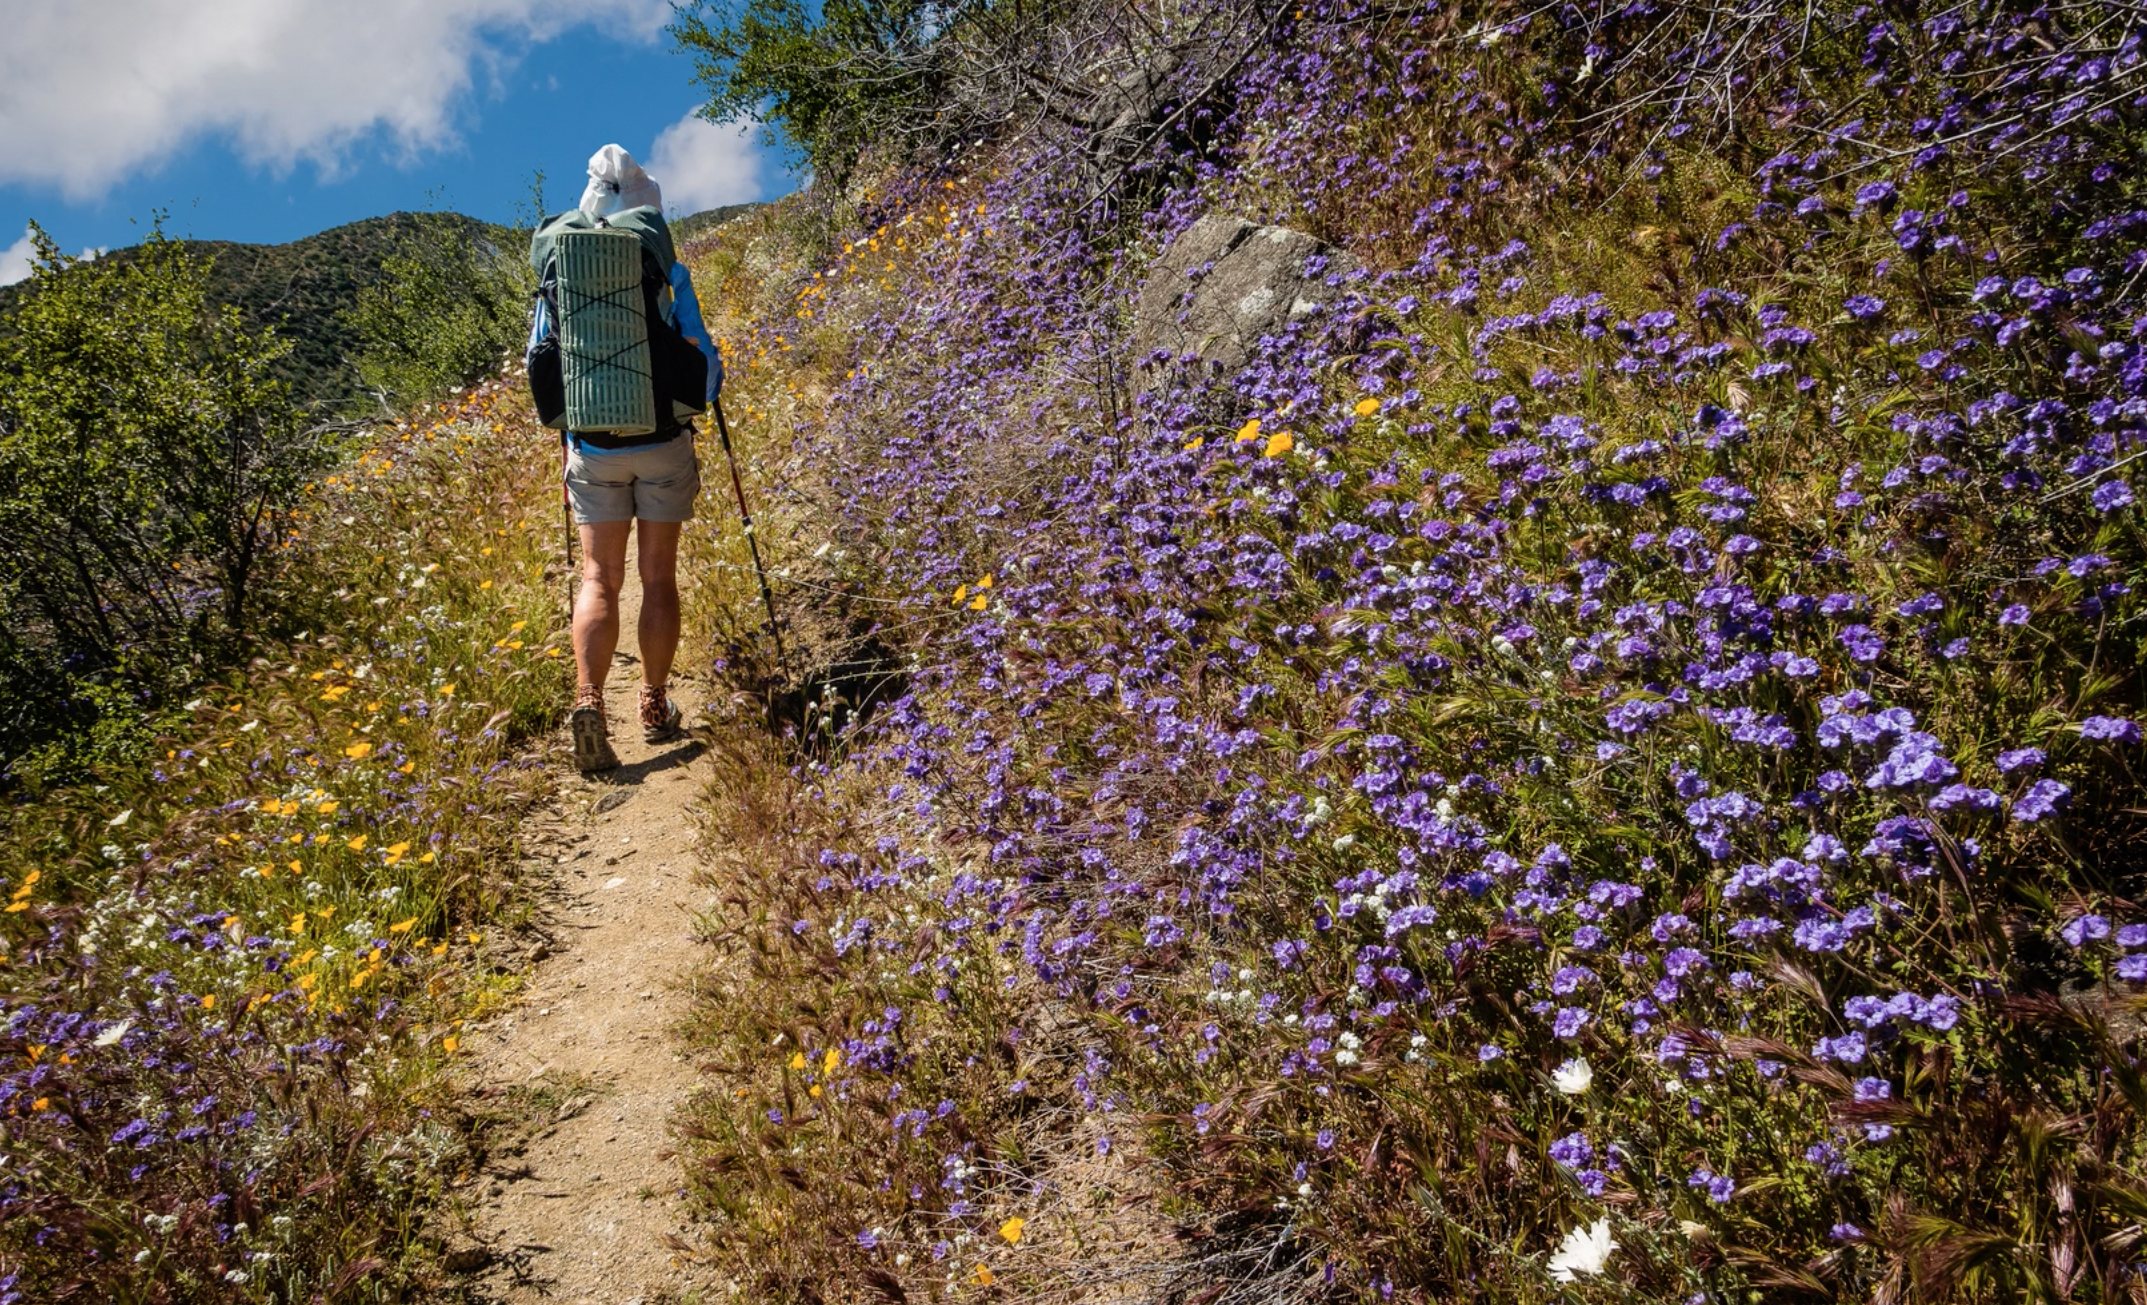 IMPORTANT Updates for AZT Thru-Hikers and Riders